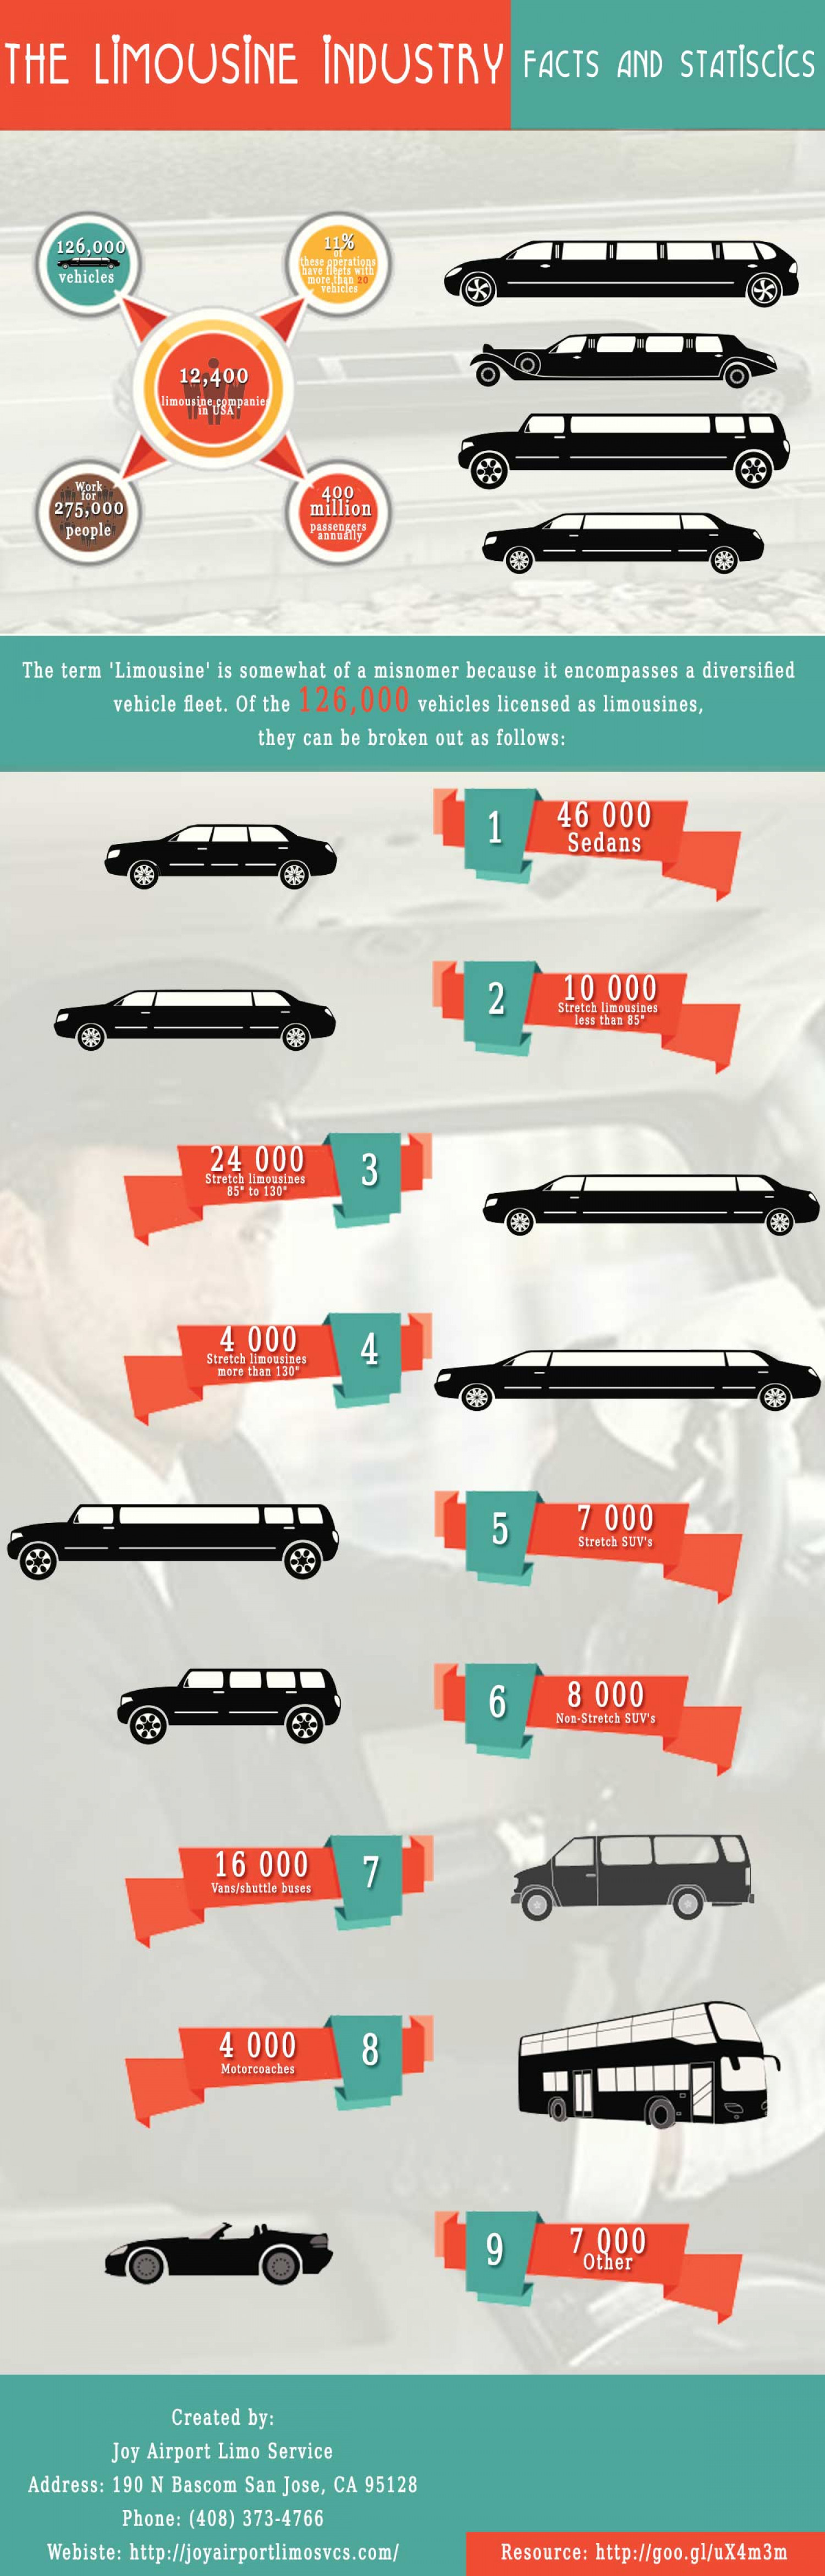 The Limousine Industry Infographic